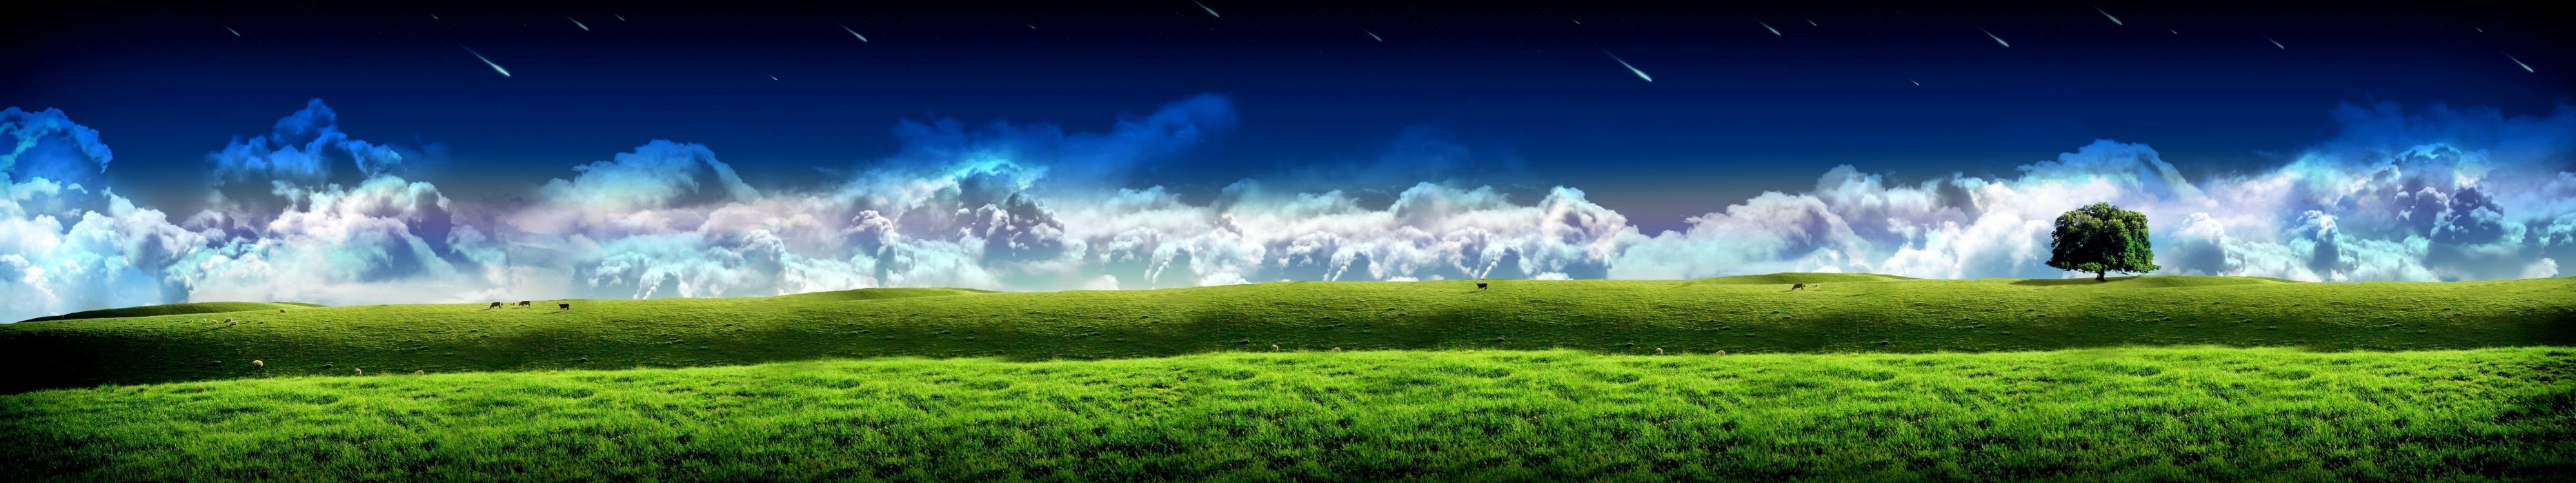 triple monitor screen wallpaper wallpaper | 7680x1440 | 768650